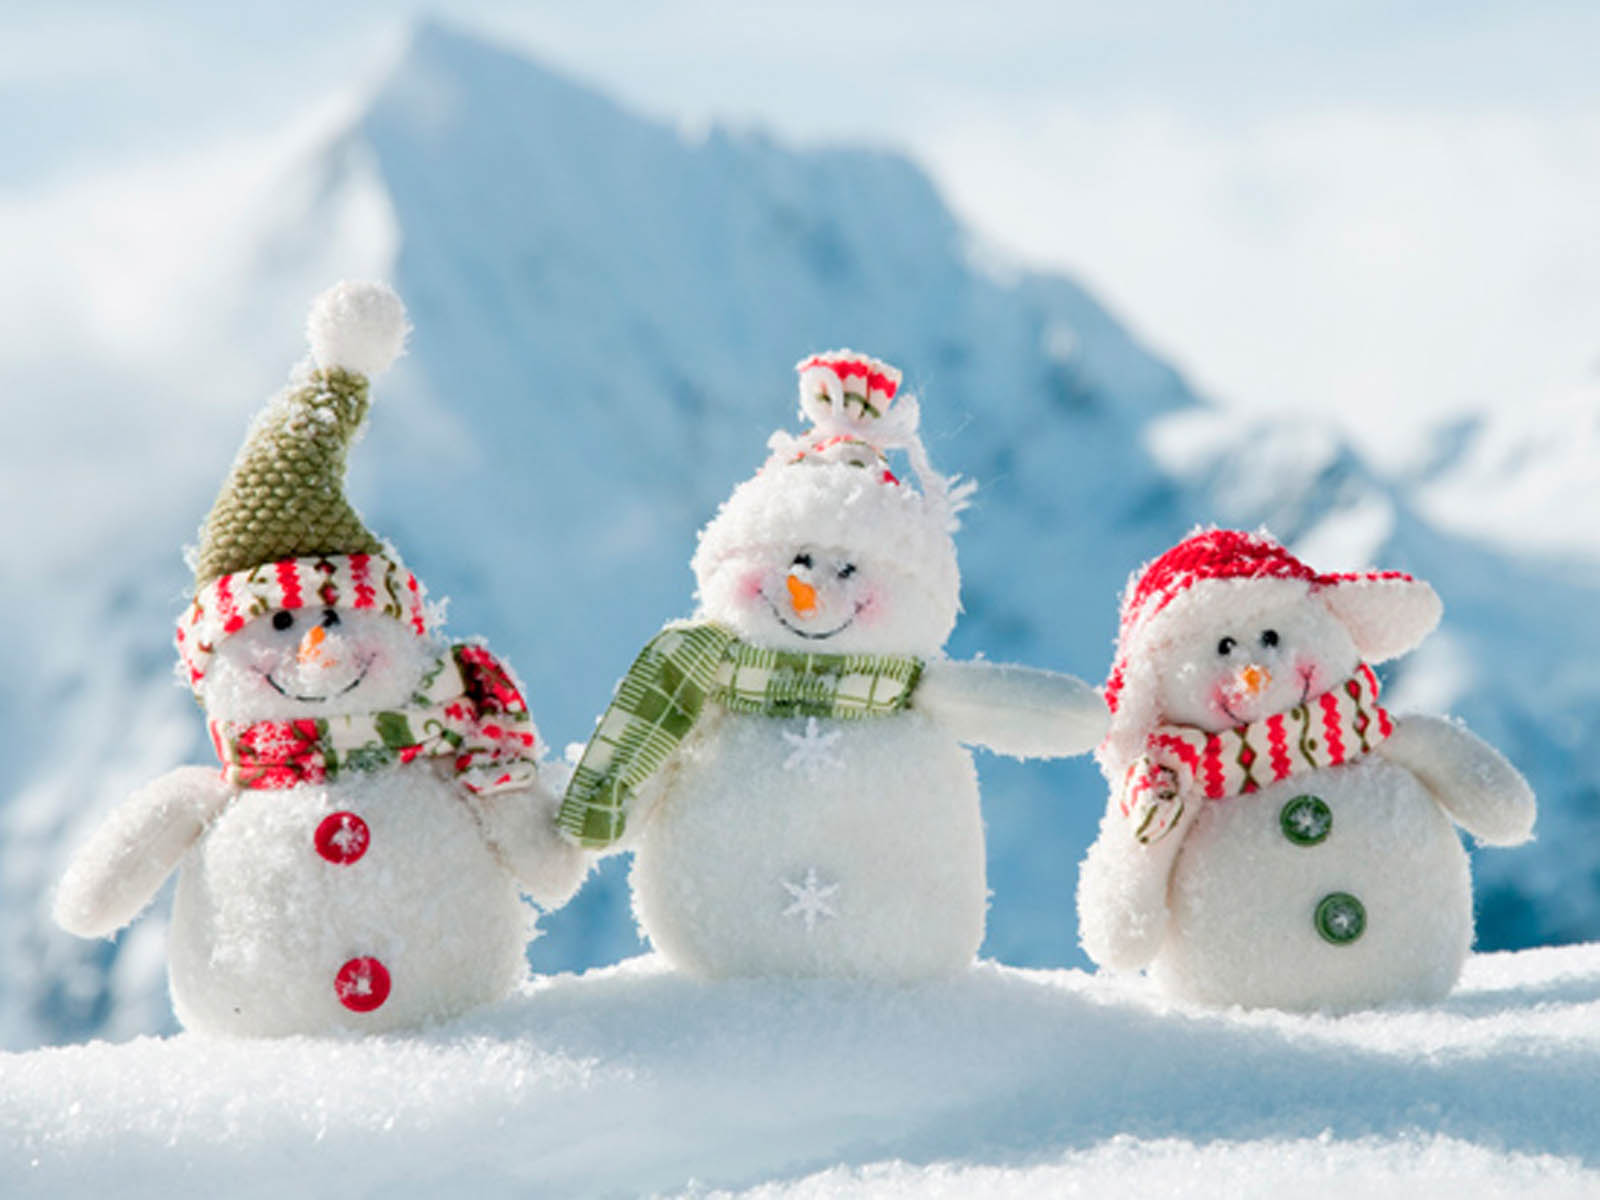 Wallpapers snowman desktop wallpapers and backgrounds - Free funny christmas desktop wallpaper ...